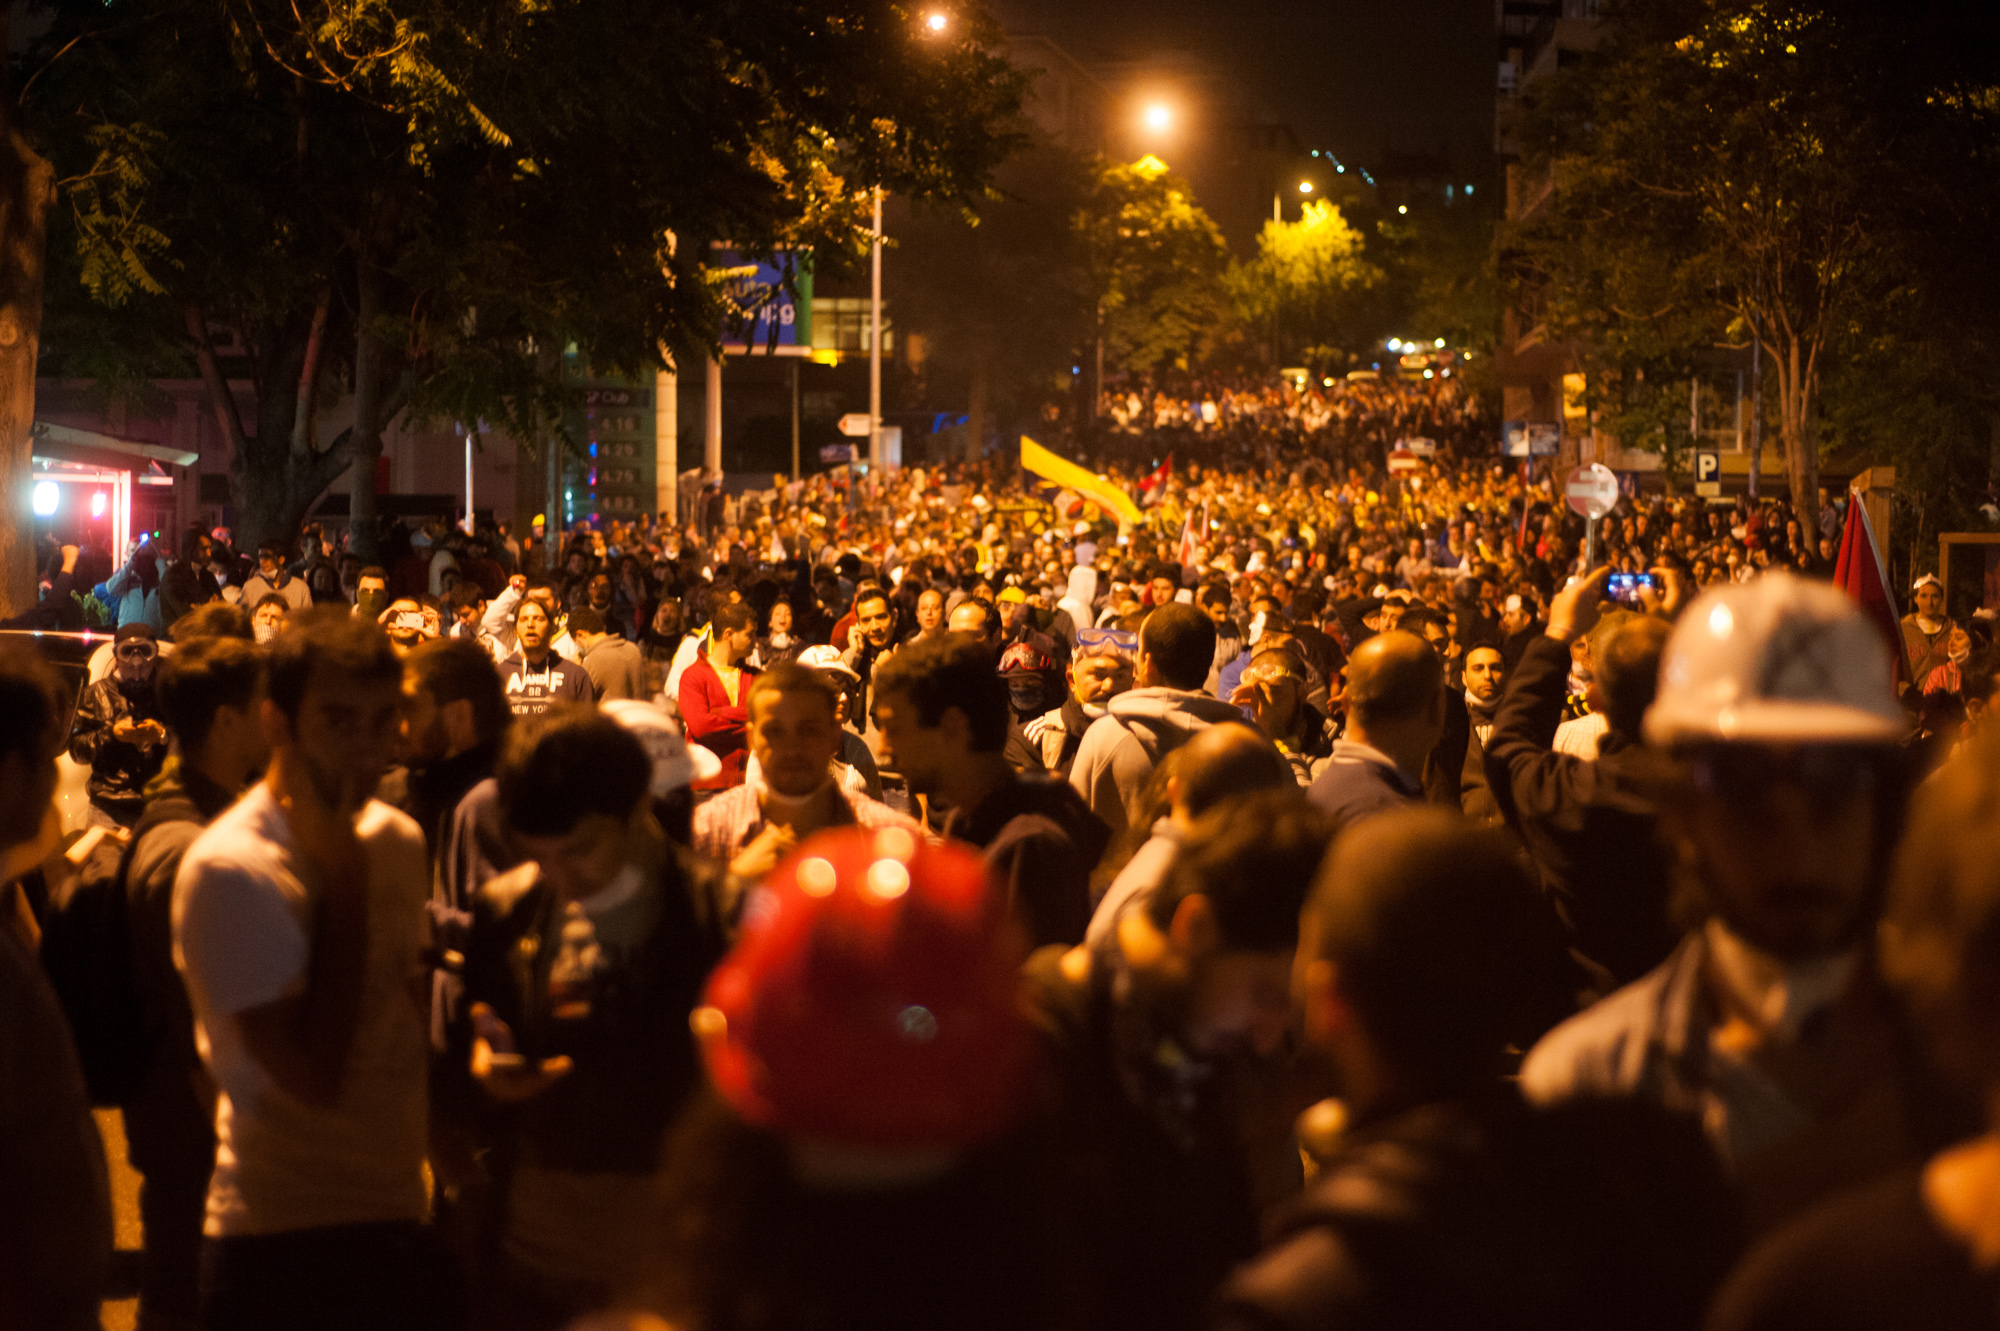 File:Nighttime mass protests in Ankara. Events of June 7-8 ...